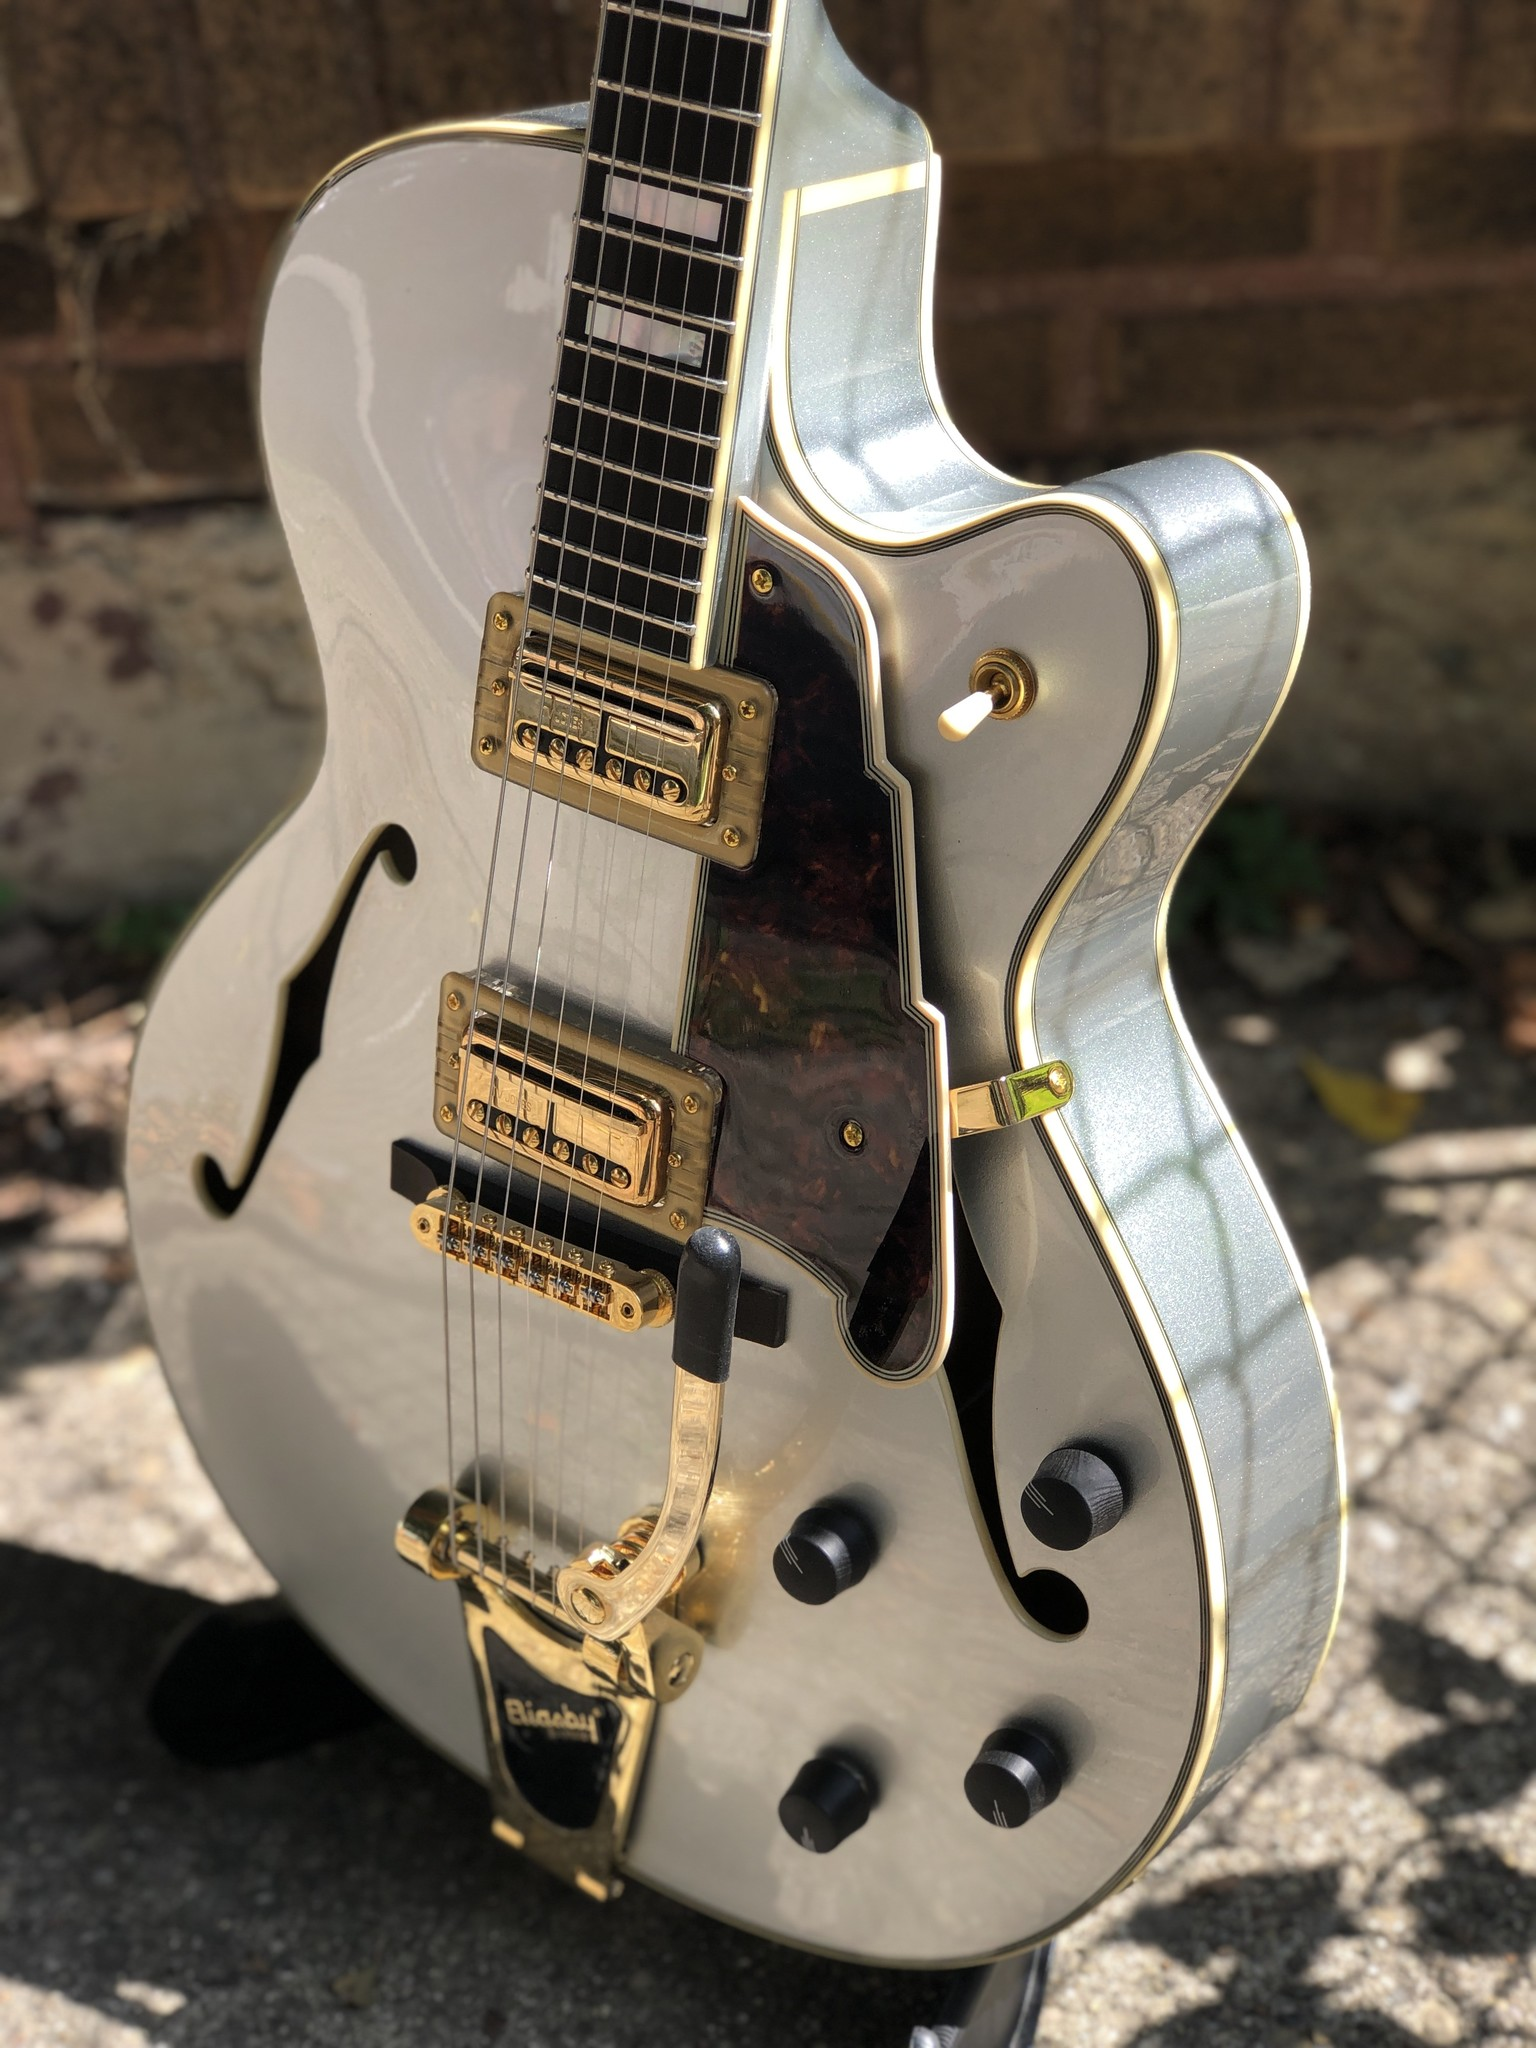 D'Angelico Deluxe DLX-175 Hollowbody - Silver-5